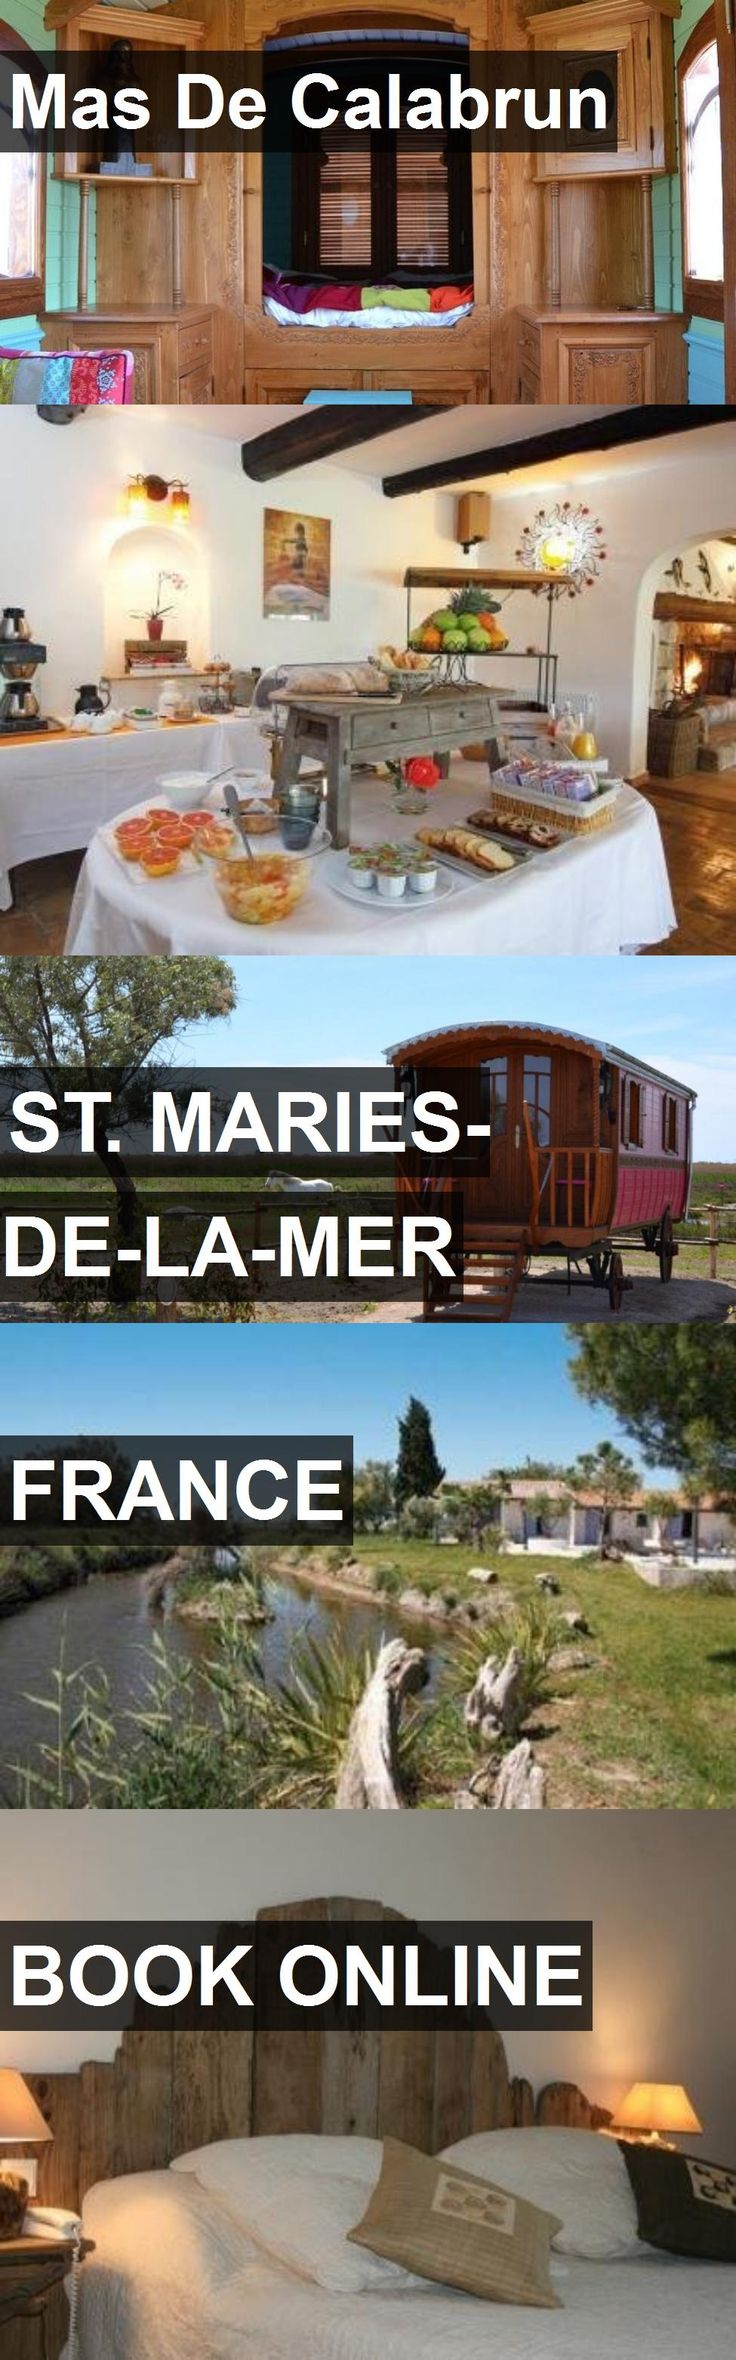 Hotel Mas De Calabrun in St. Maries-de-la-Mer, France. For more information, photos, reviews and best prices please follow the link. #France #St.Maries-de-la-Mer #MasDeCalabrun #hotel #travel #vacation